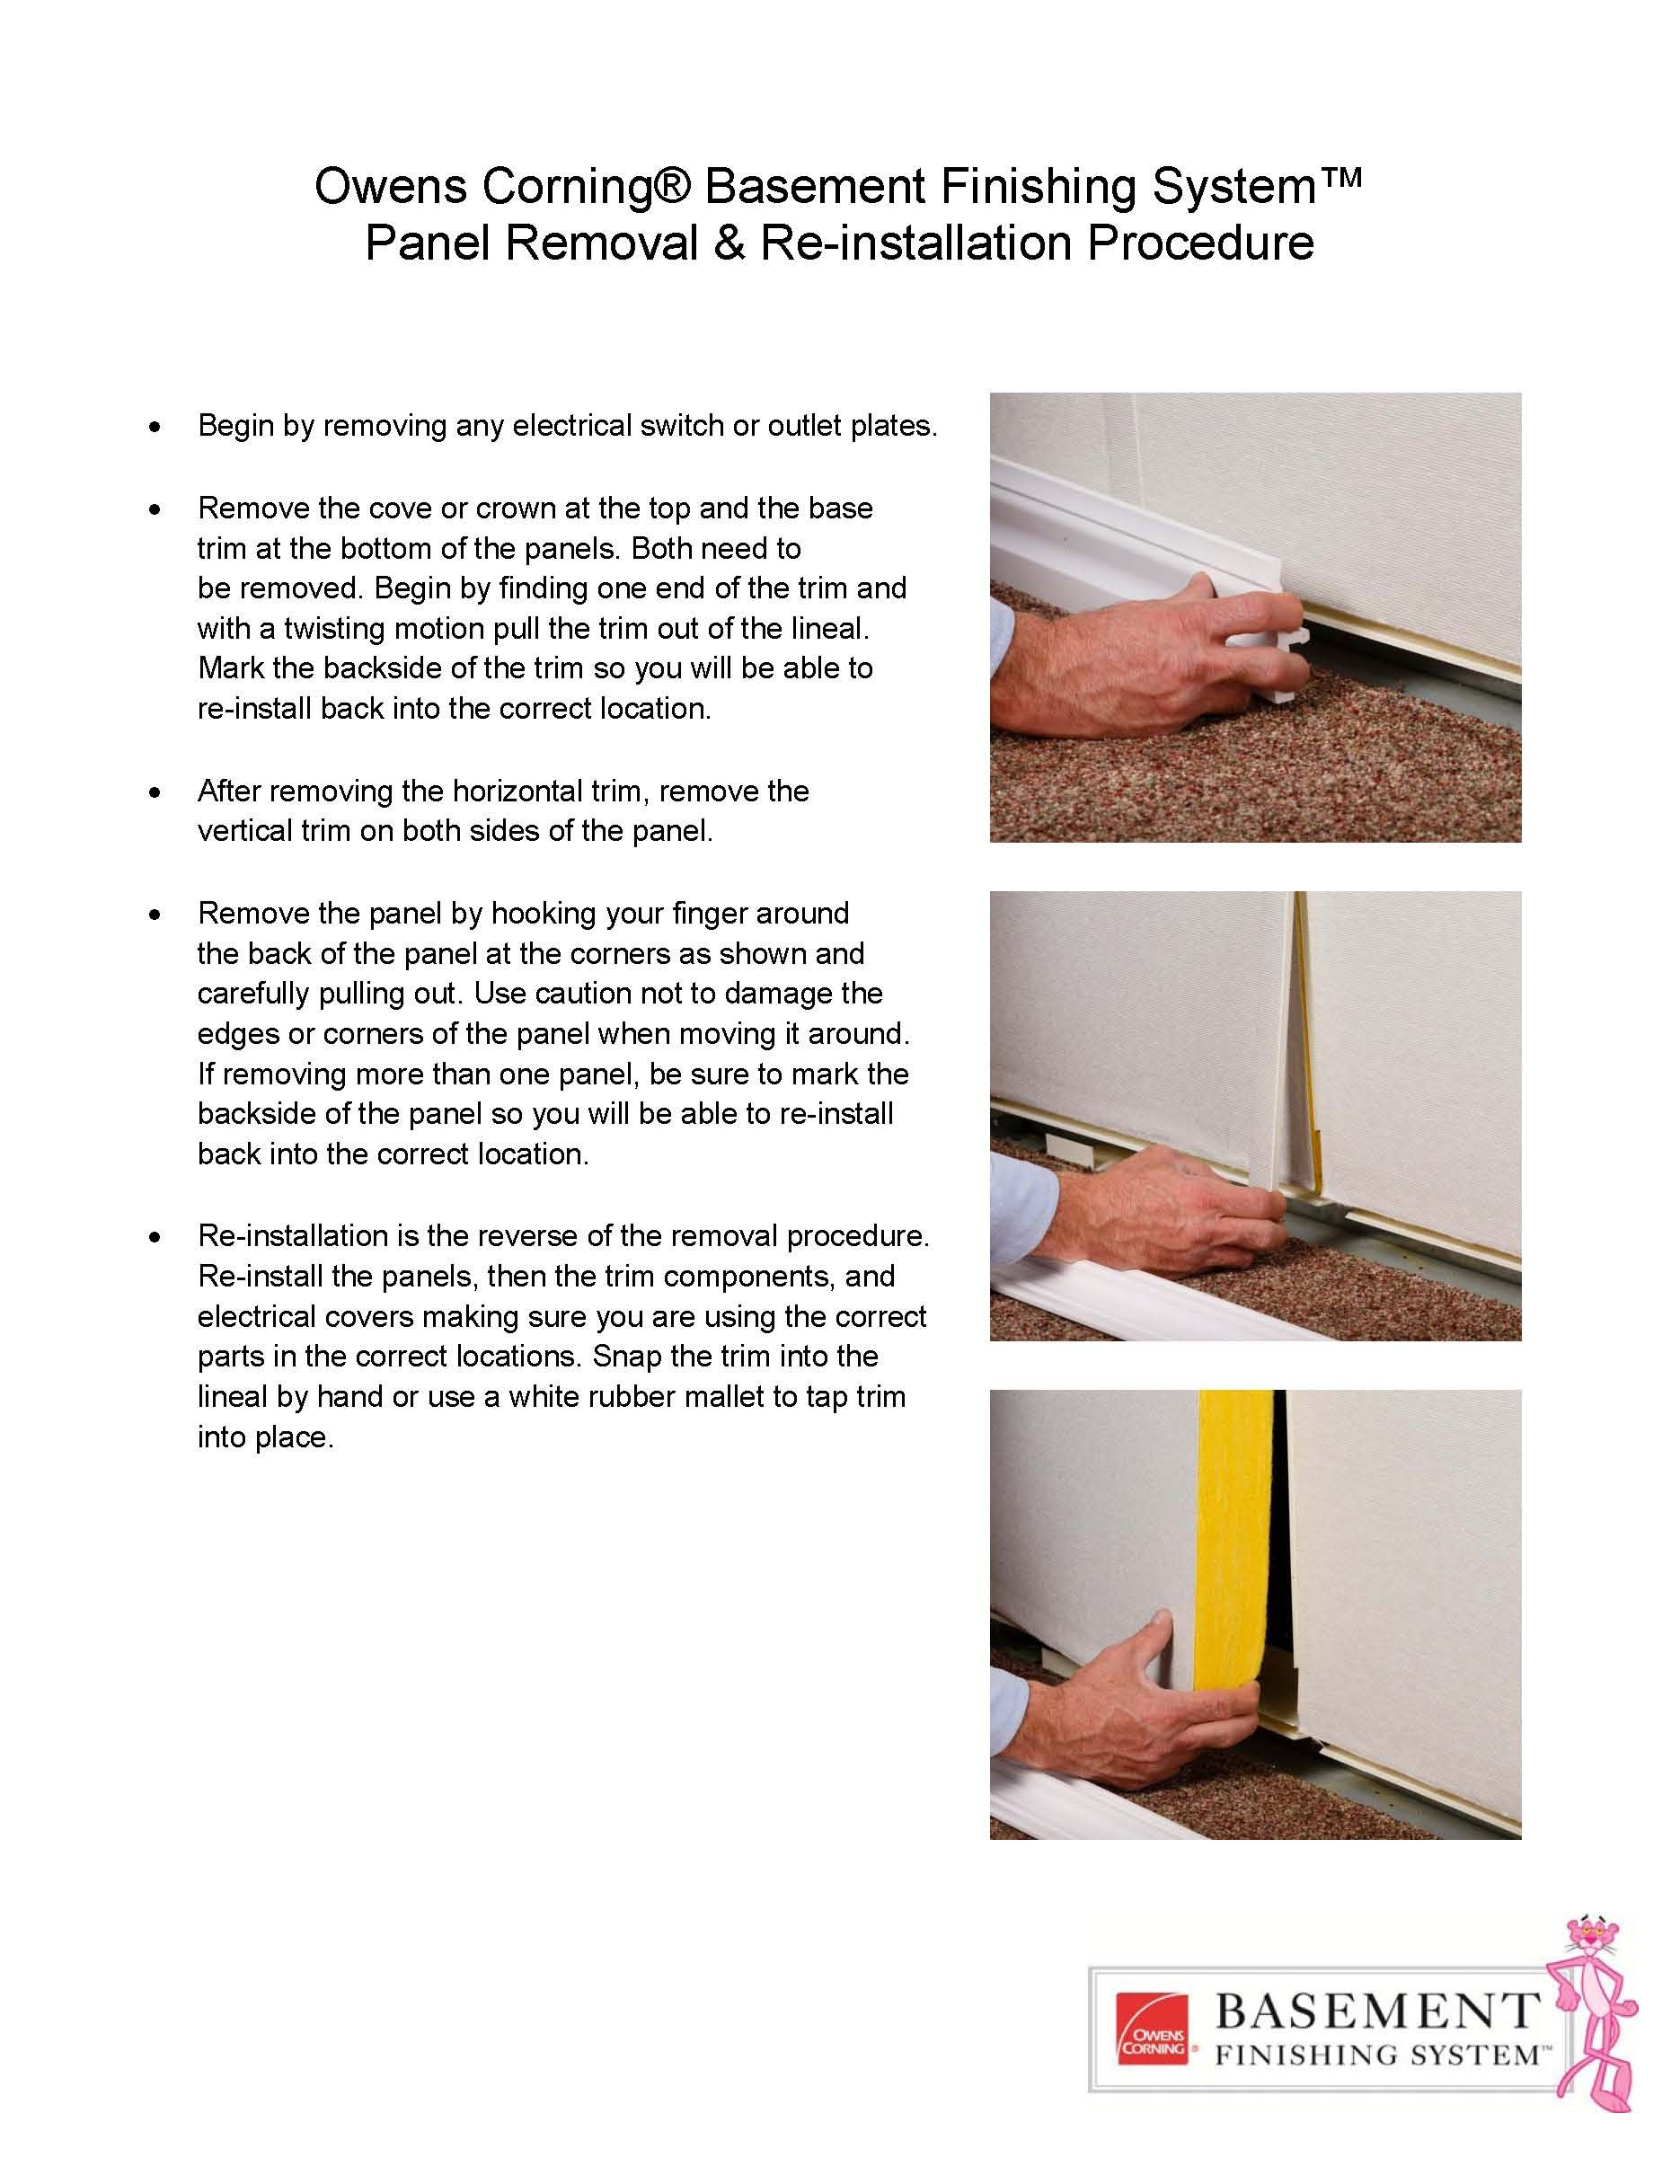 Total basement finishing system - Owens Corning Basement Finishing System Wall Panel Removal Instructions